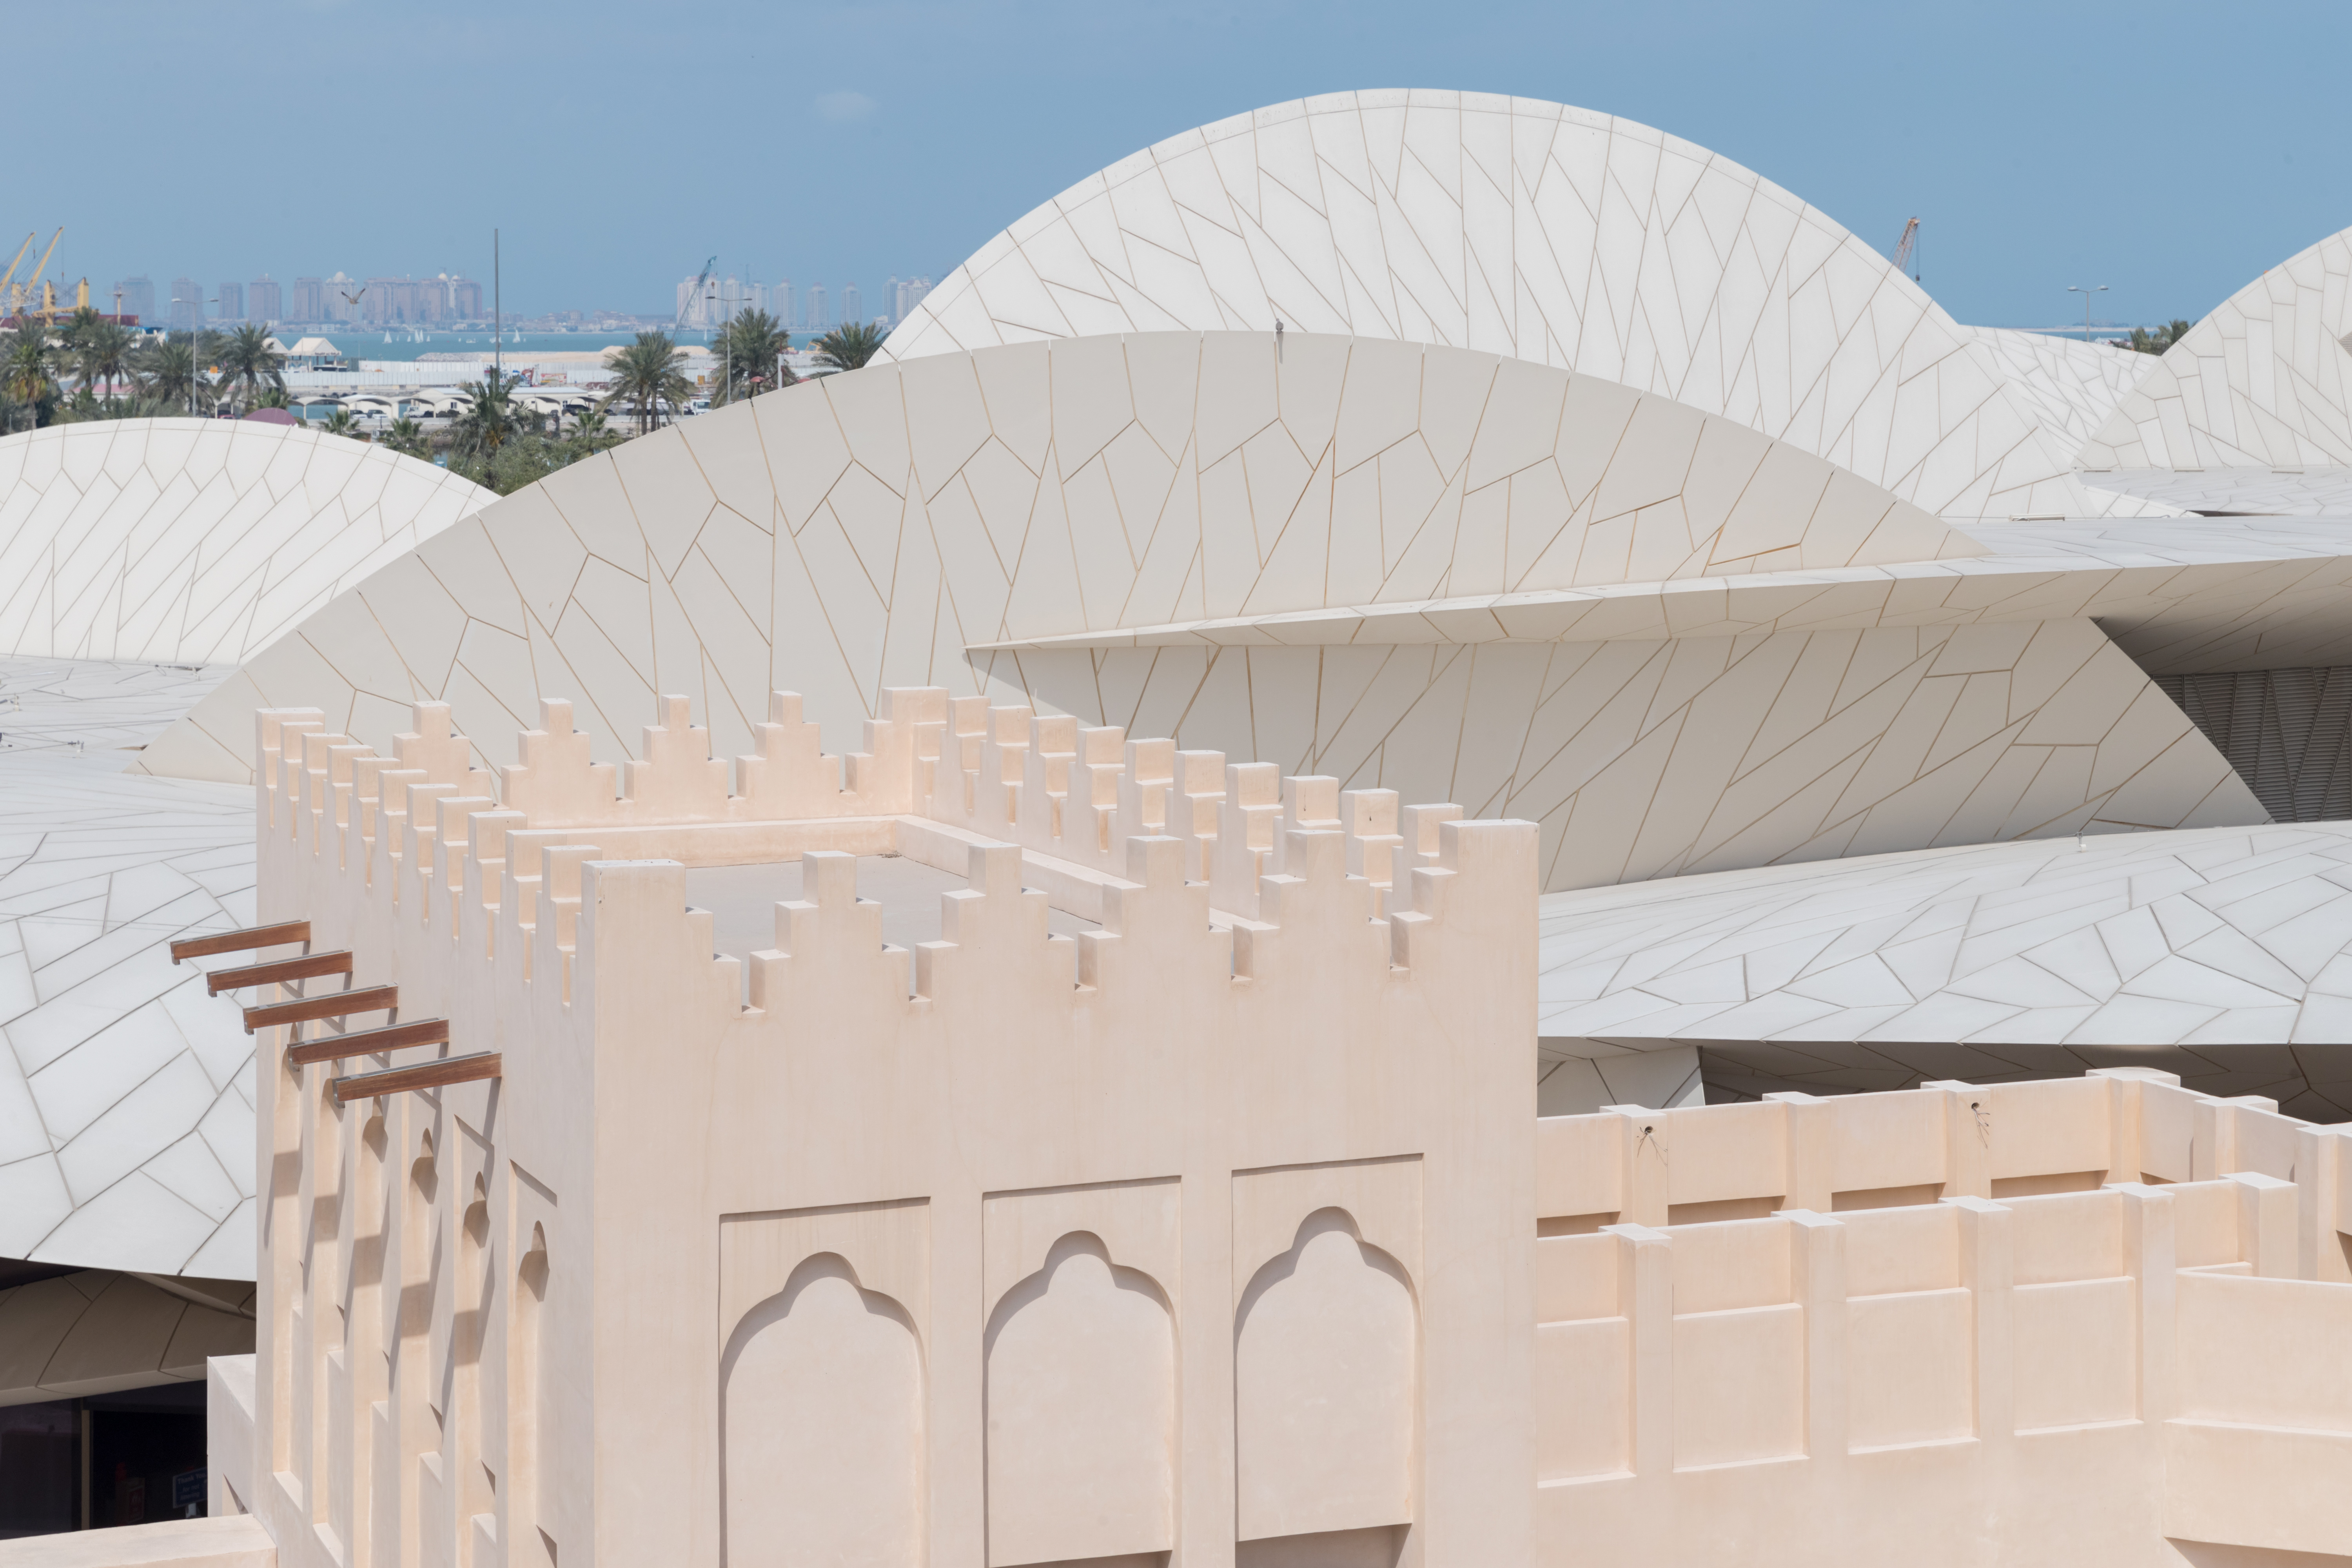 National Museum of Qatar embraces as its centrepiece the restored historic Palace of Sheikh Abdullah bin Jassim Al Thani, son of the founder of modern Qatar. Photo courtesy: National Museum of Qatar